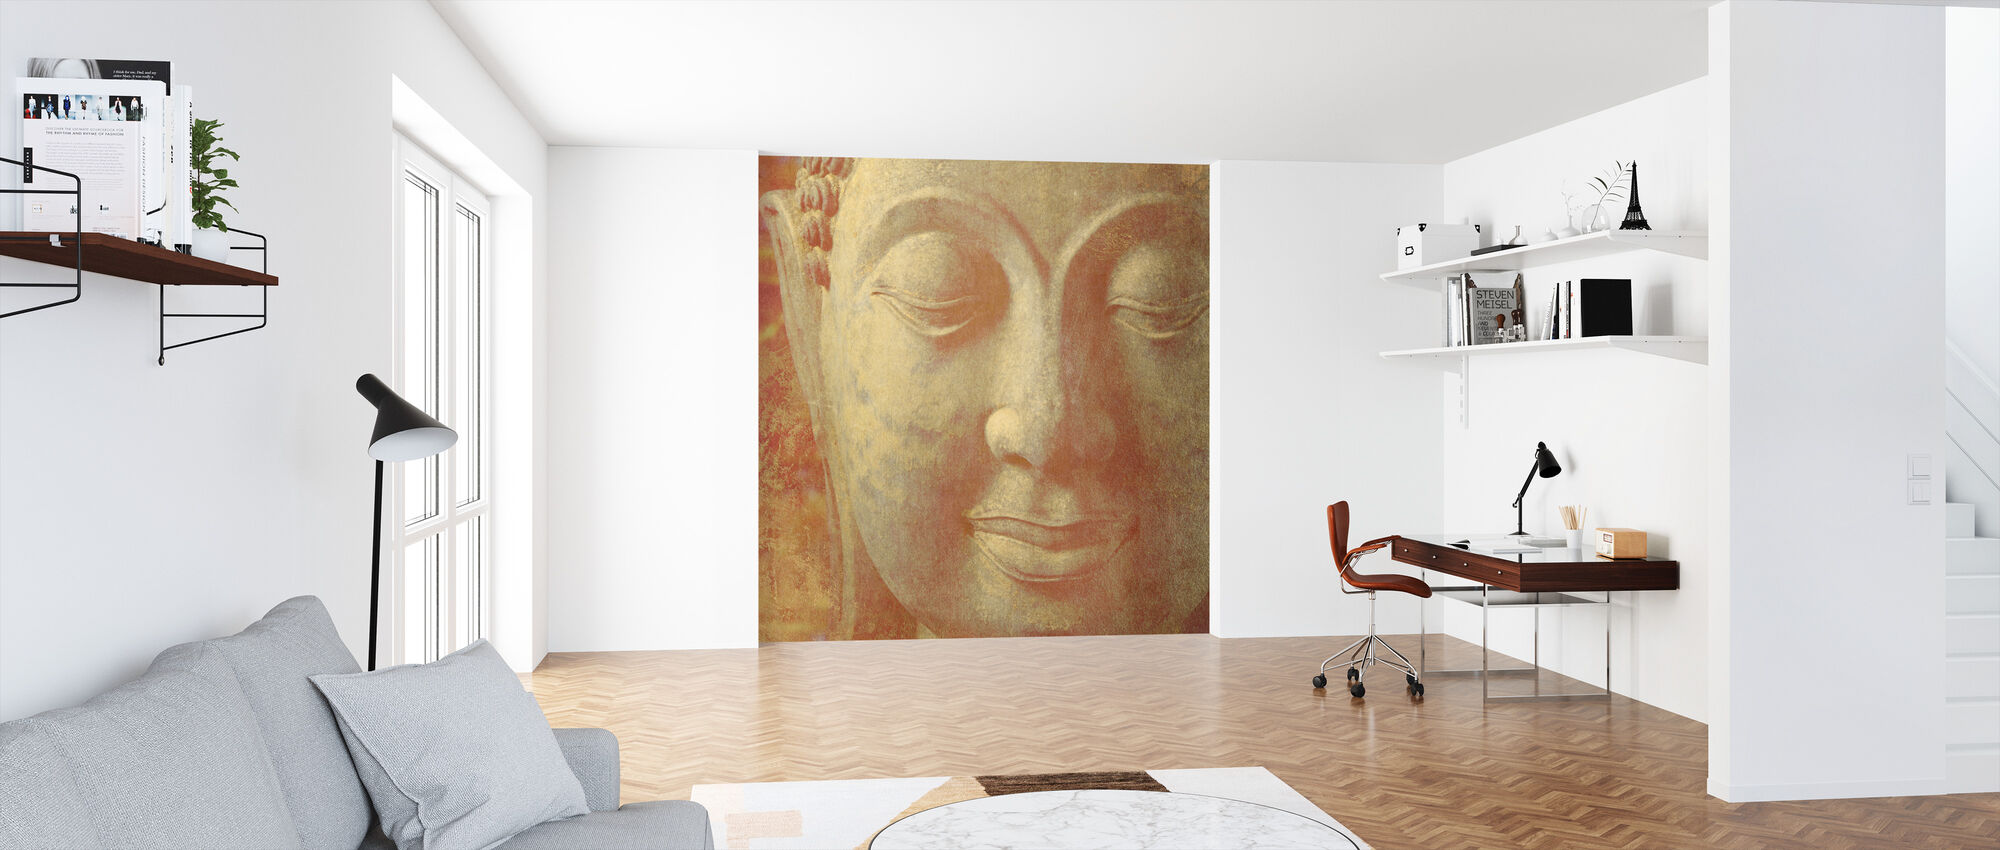 Saffron Buddha Squared - Wallpaper - Office